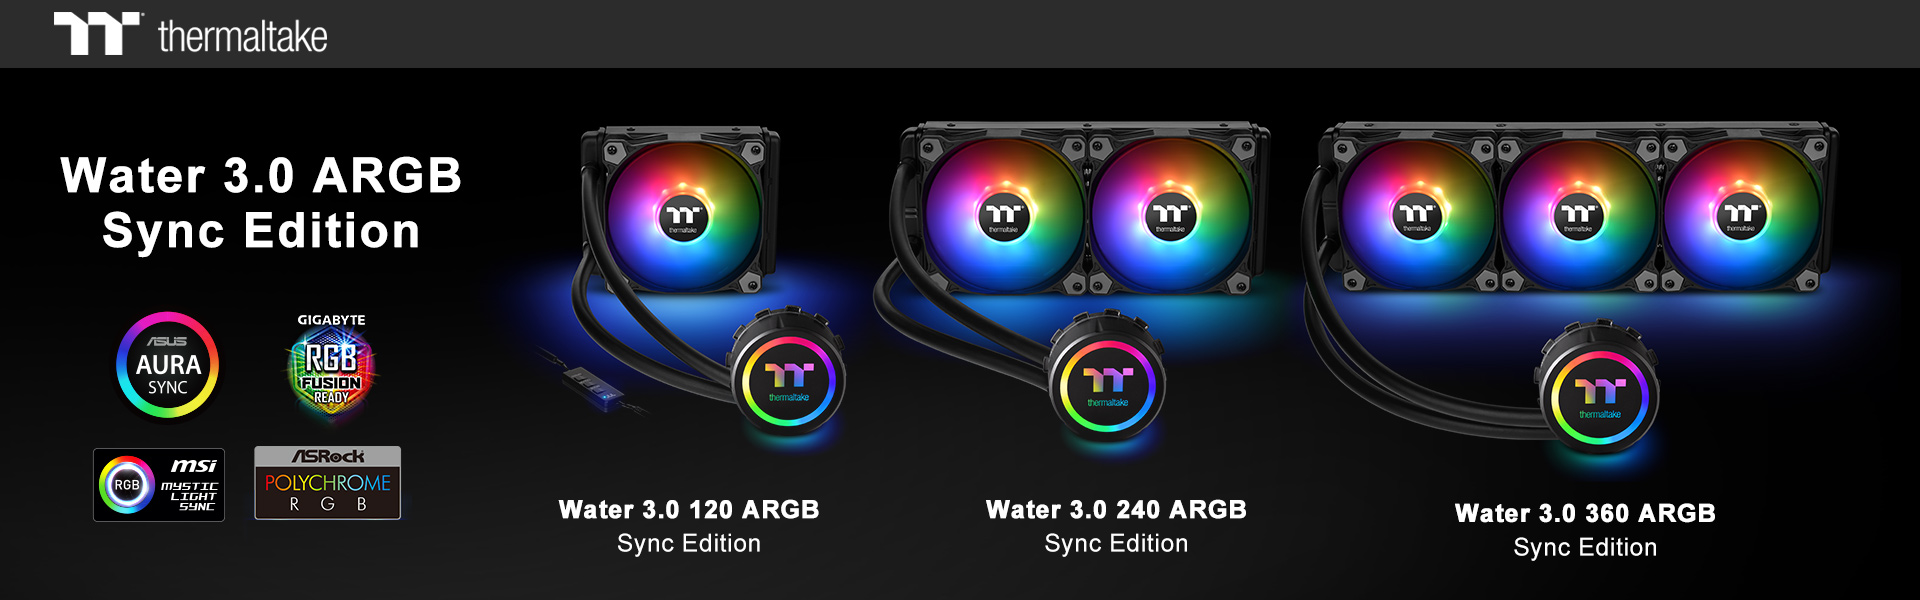 thermaltake new all in one liquid cooling solution the water 3 0 argb sync edition series at ces 2019 1 Thermaltake เปิดตัวชุดน้ำสำเร็จ All In One Liquid Cooling รุ่นใหม่ล่าสุด Thermaltake Water 3.0 ARGB Sync Edition Series ในงาน CES2019